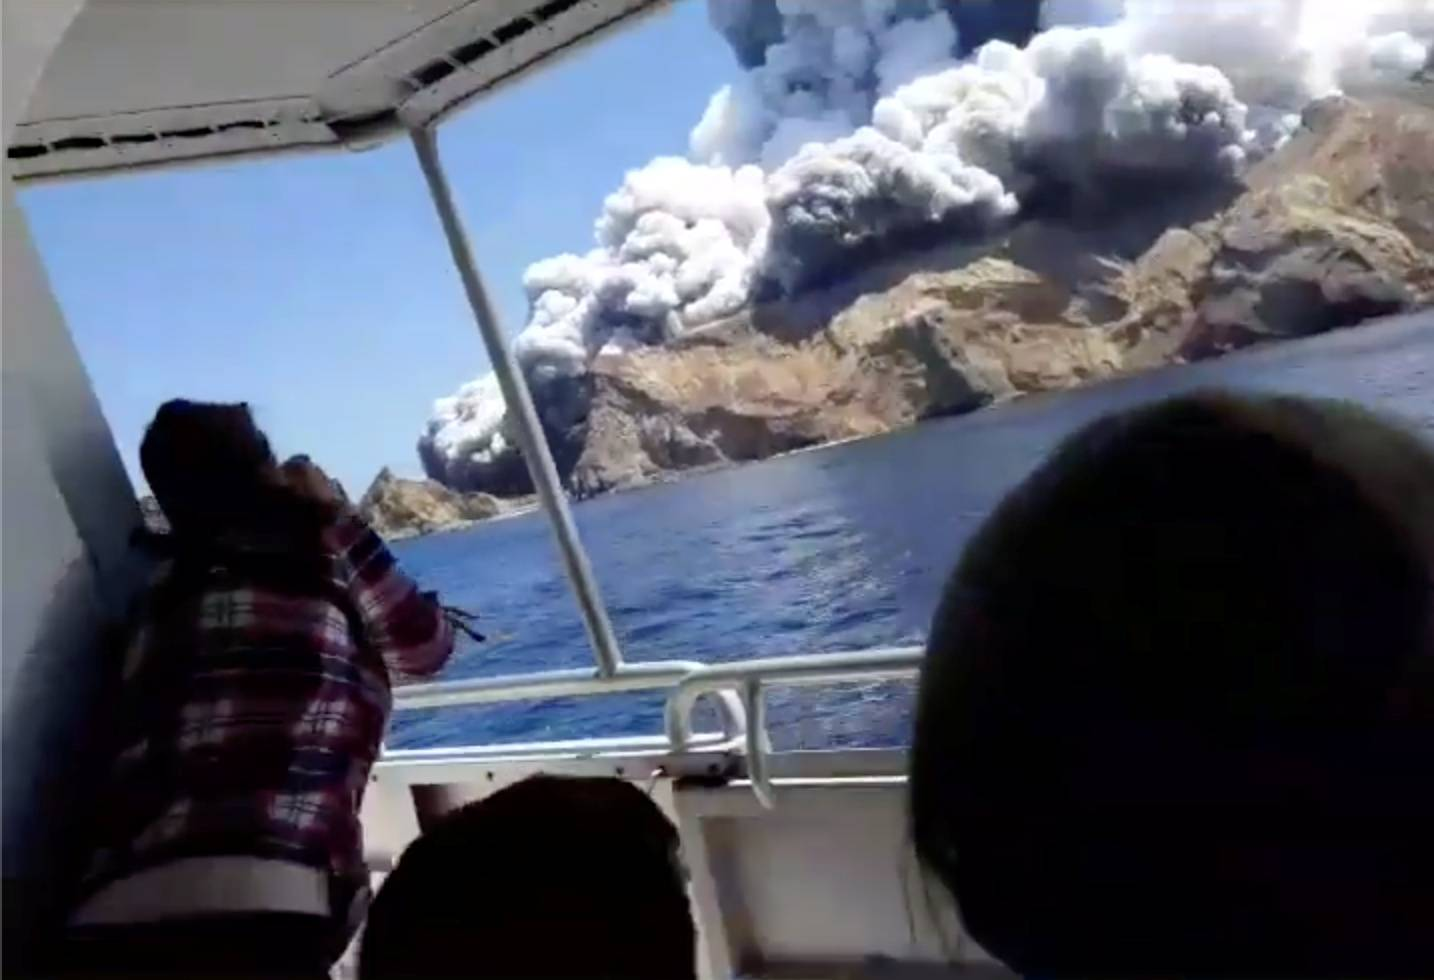 People on a boat react as smoke billows from the volcanic eruption of Whakaari, also known as White Island